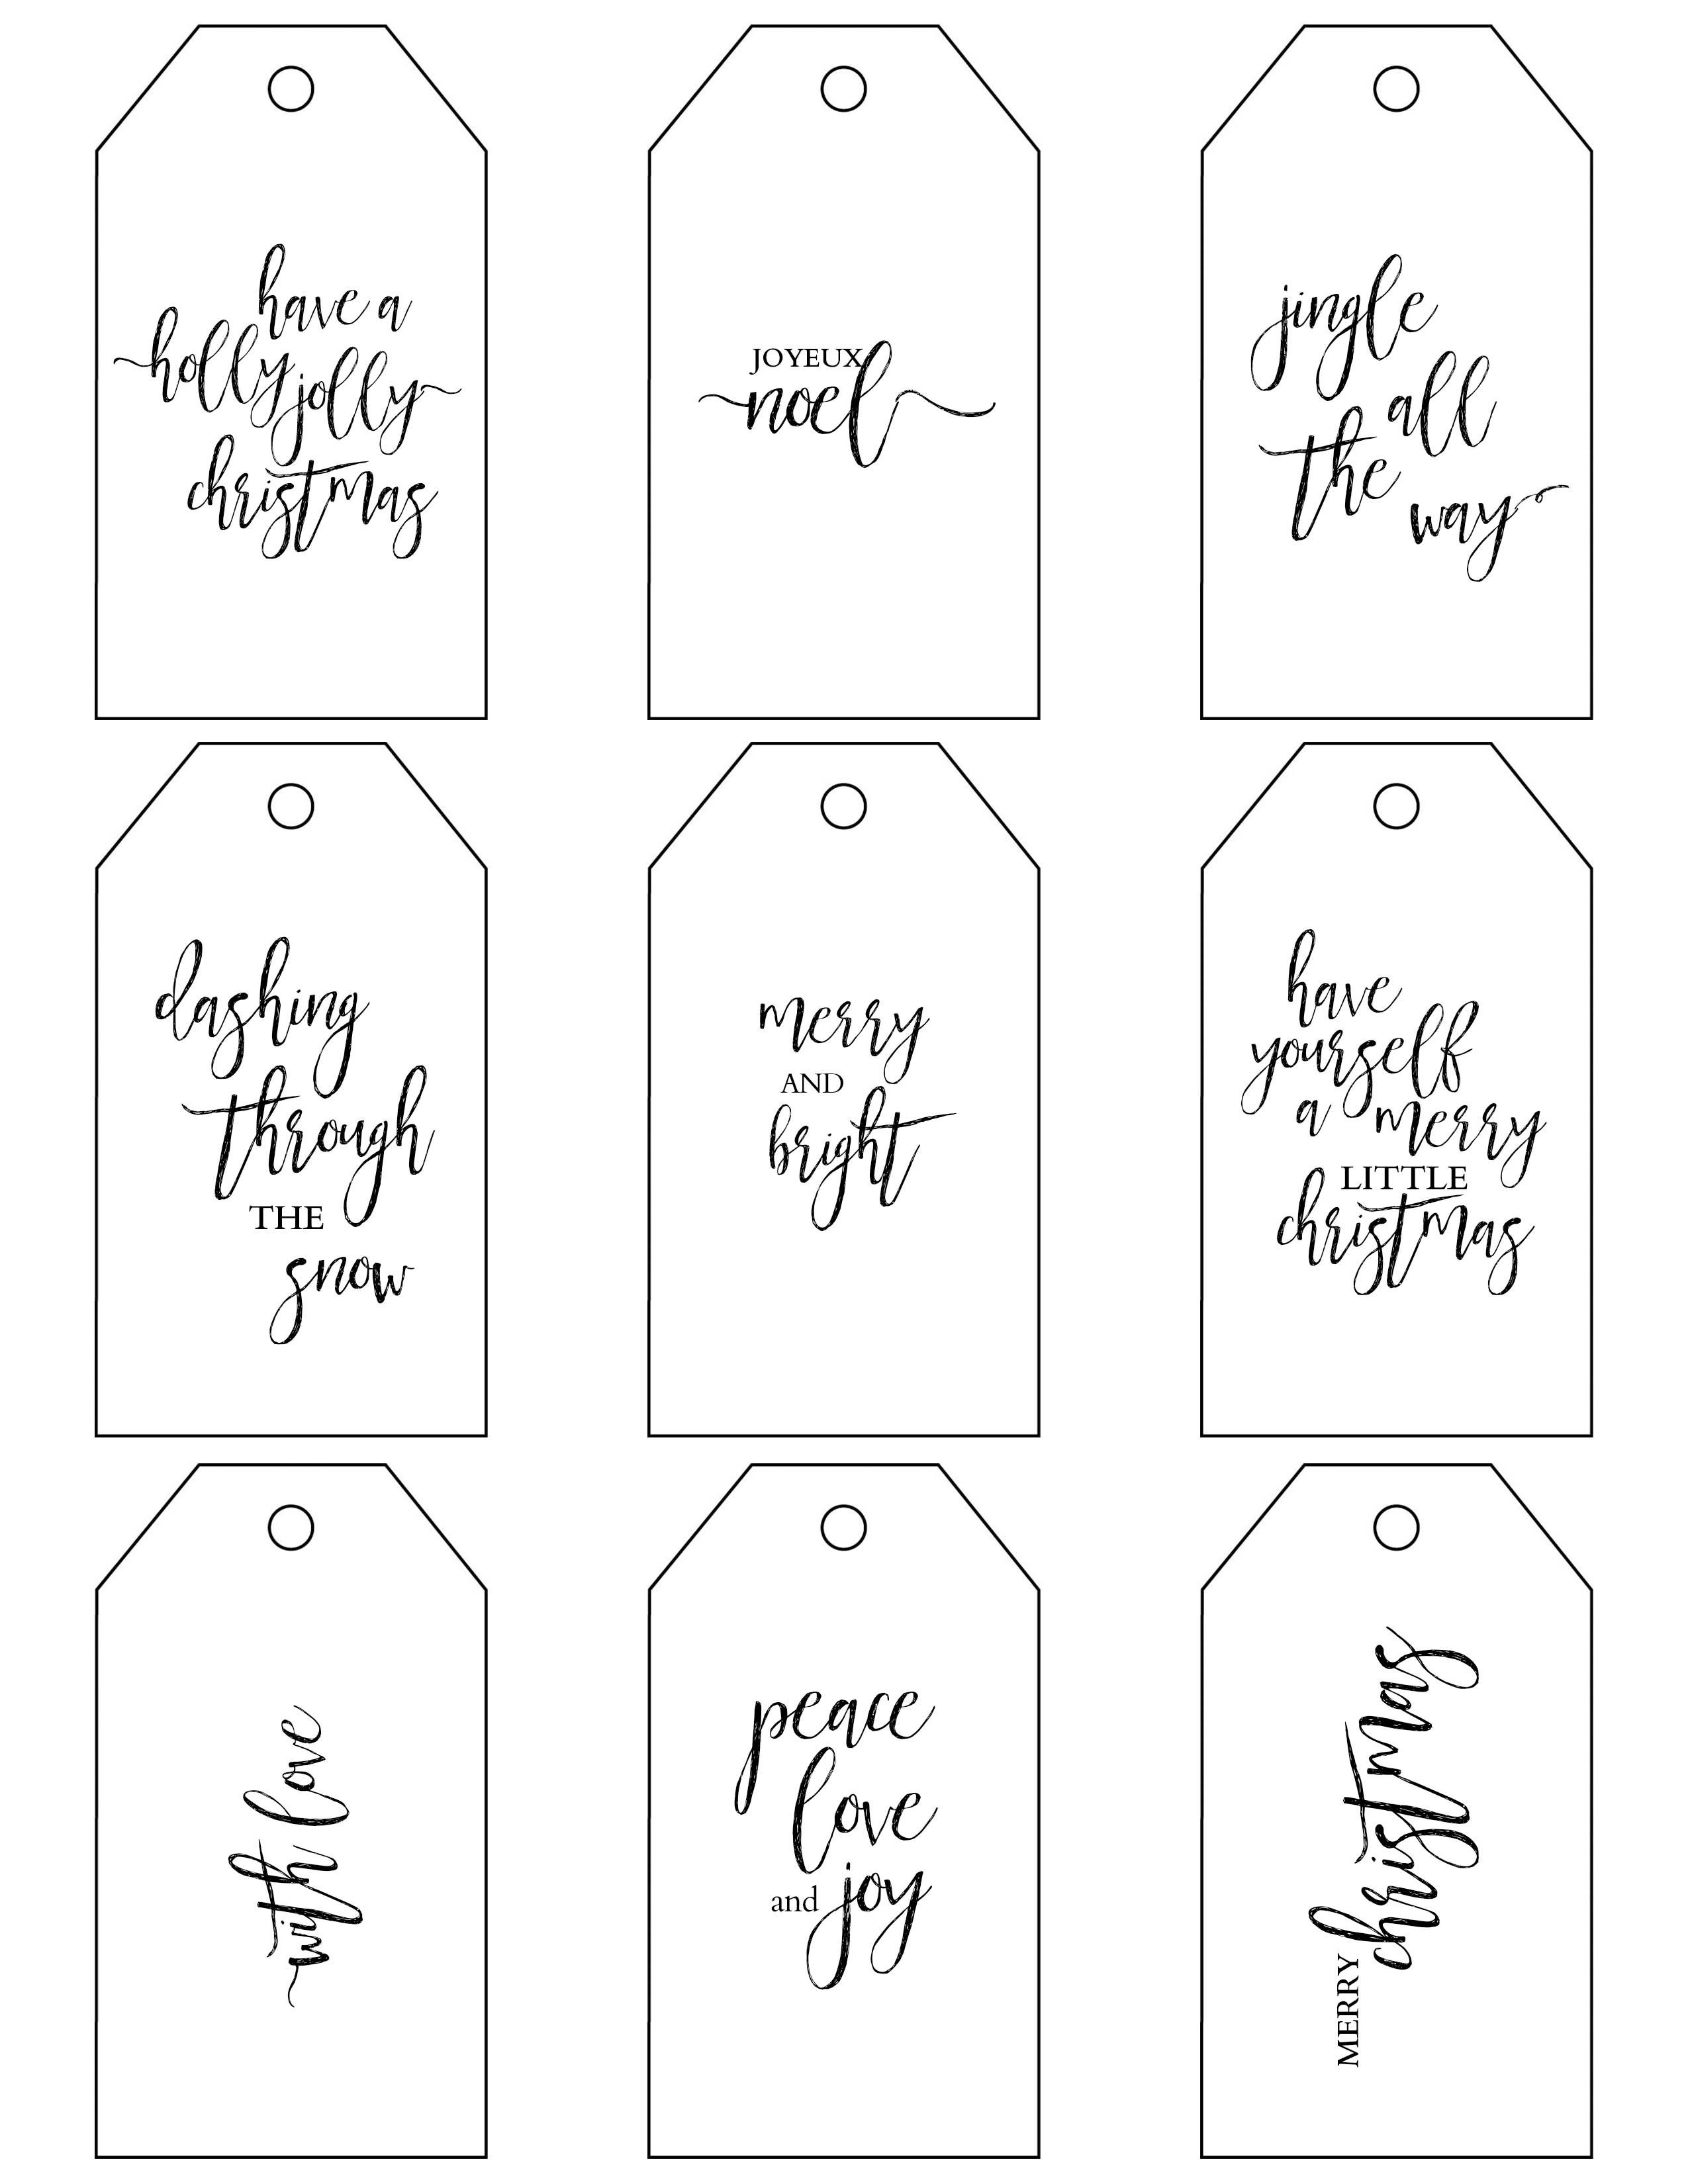 Printable Christmas Gift Tags Make Holiday Wrapping Simple - Free Printable Christmas Gift Tags